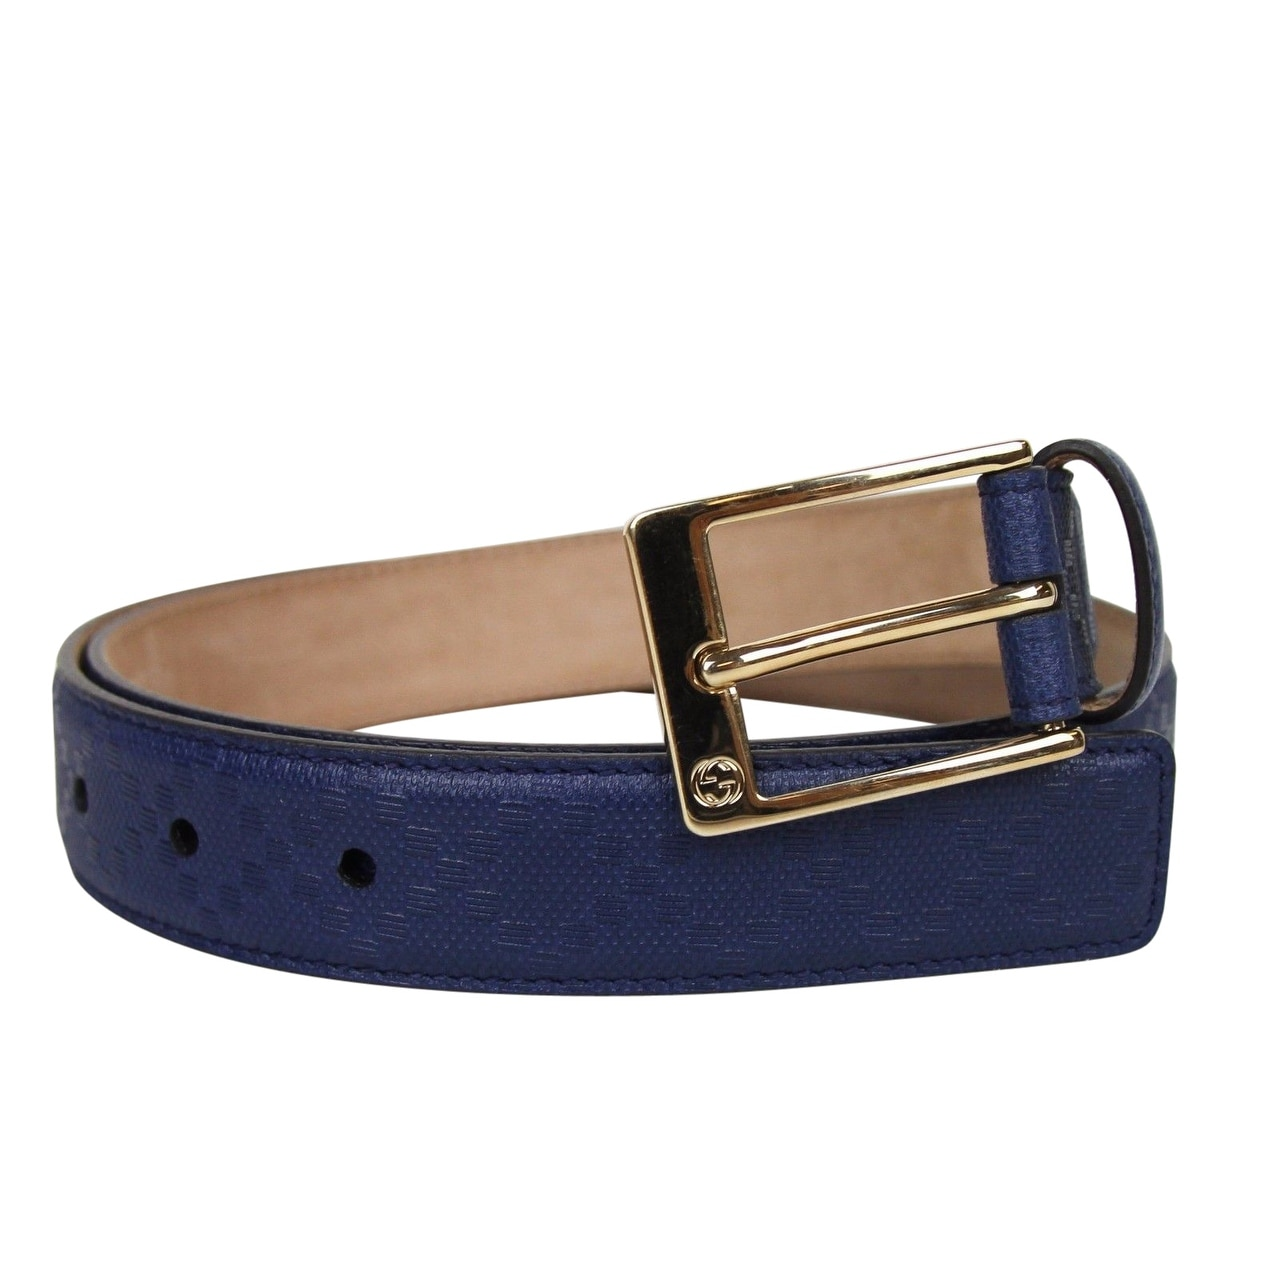 36e18fb58 Shop Gucci Men's Square Navy Blue Leather Belt With Buckle 345658 4232 -  Free Shipping Today - Overstock - 25455586